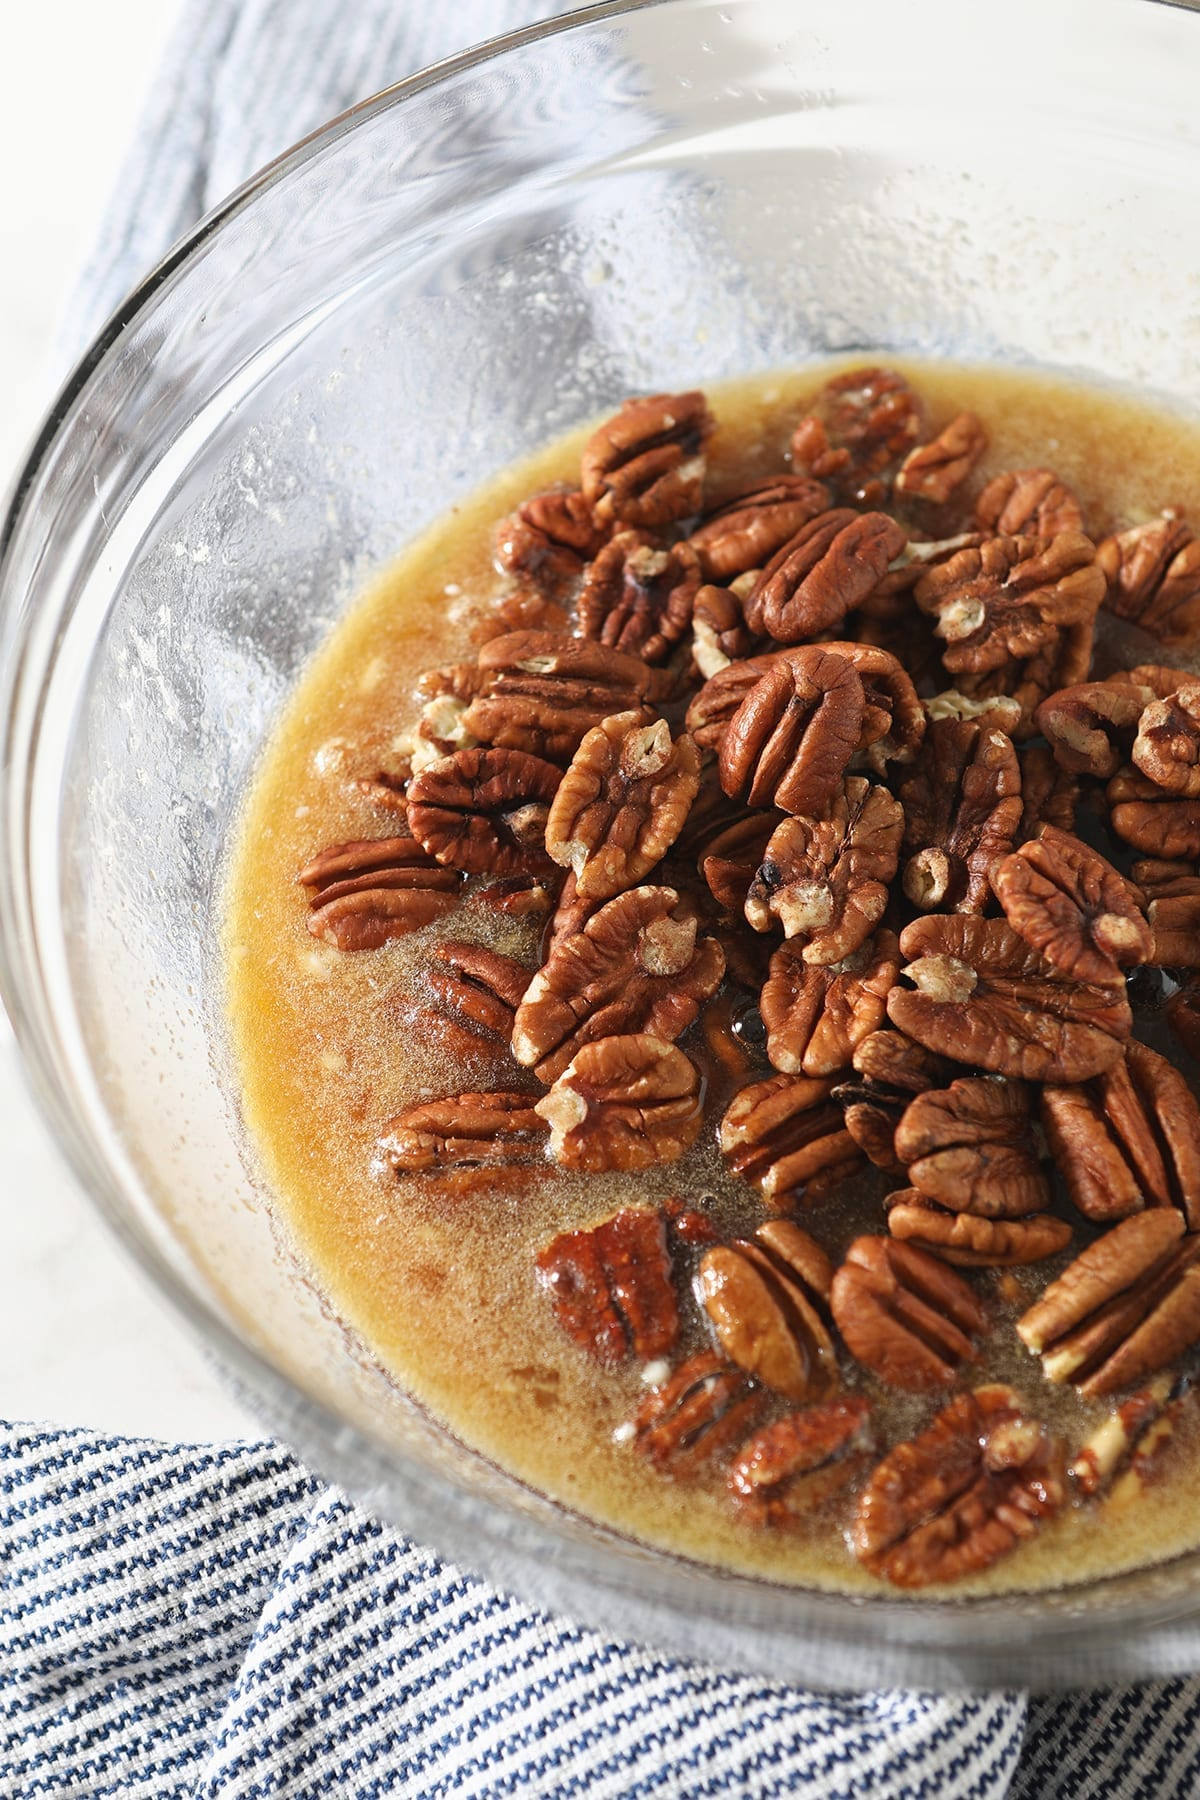 Pecan halves sit on top of other filling ingredients in a clear glass bowl